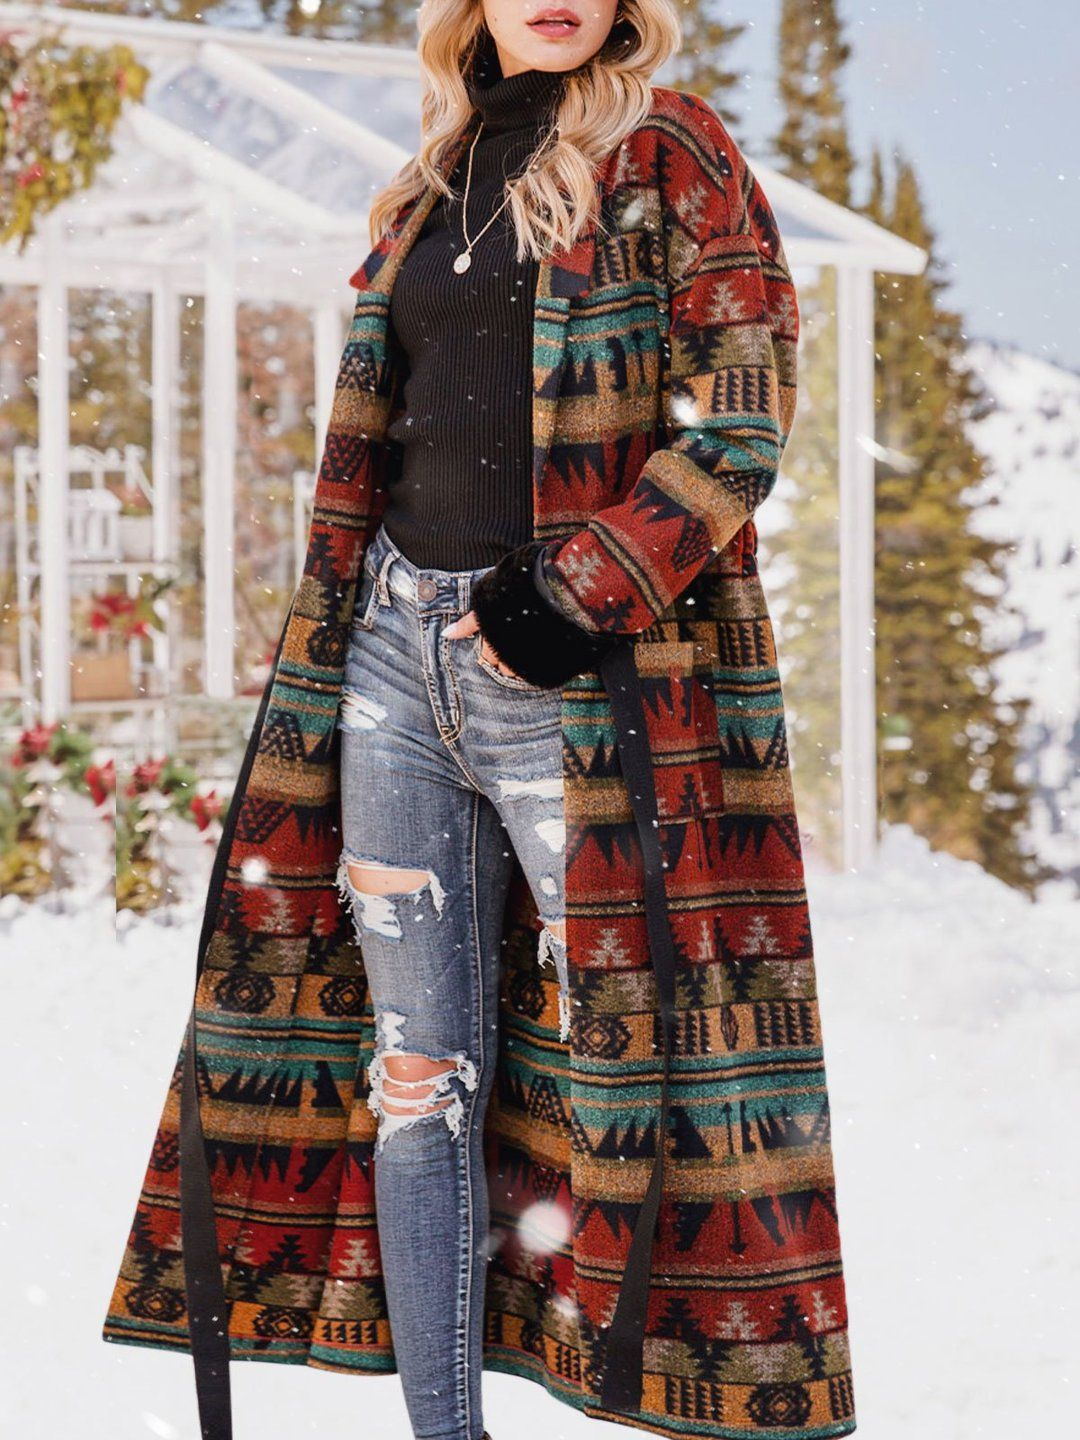 Women Tribal Boho Shawl Collar Outerwear Coat With Belt Tops Wotoba Long Sleeve 1 Red Women Tops Lapel Polyester Holiday Pockets Daily Tops Long Sleeve Outerwear Casual Outerwear Outerwear [ 1440 x 1080 Pixel ]